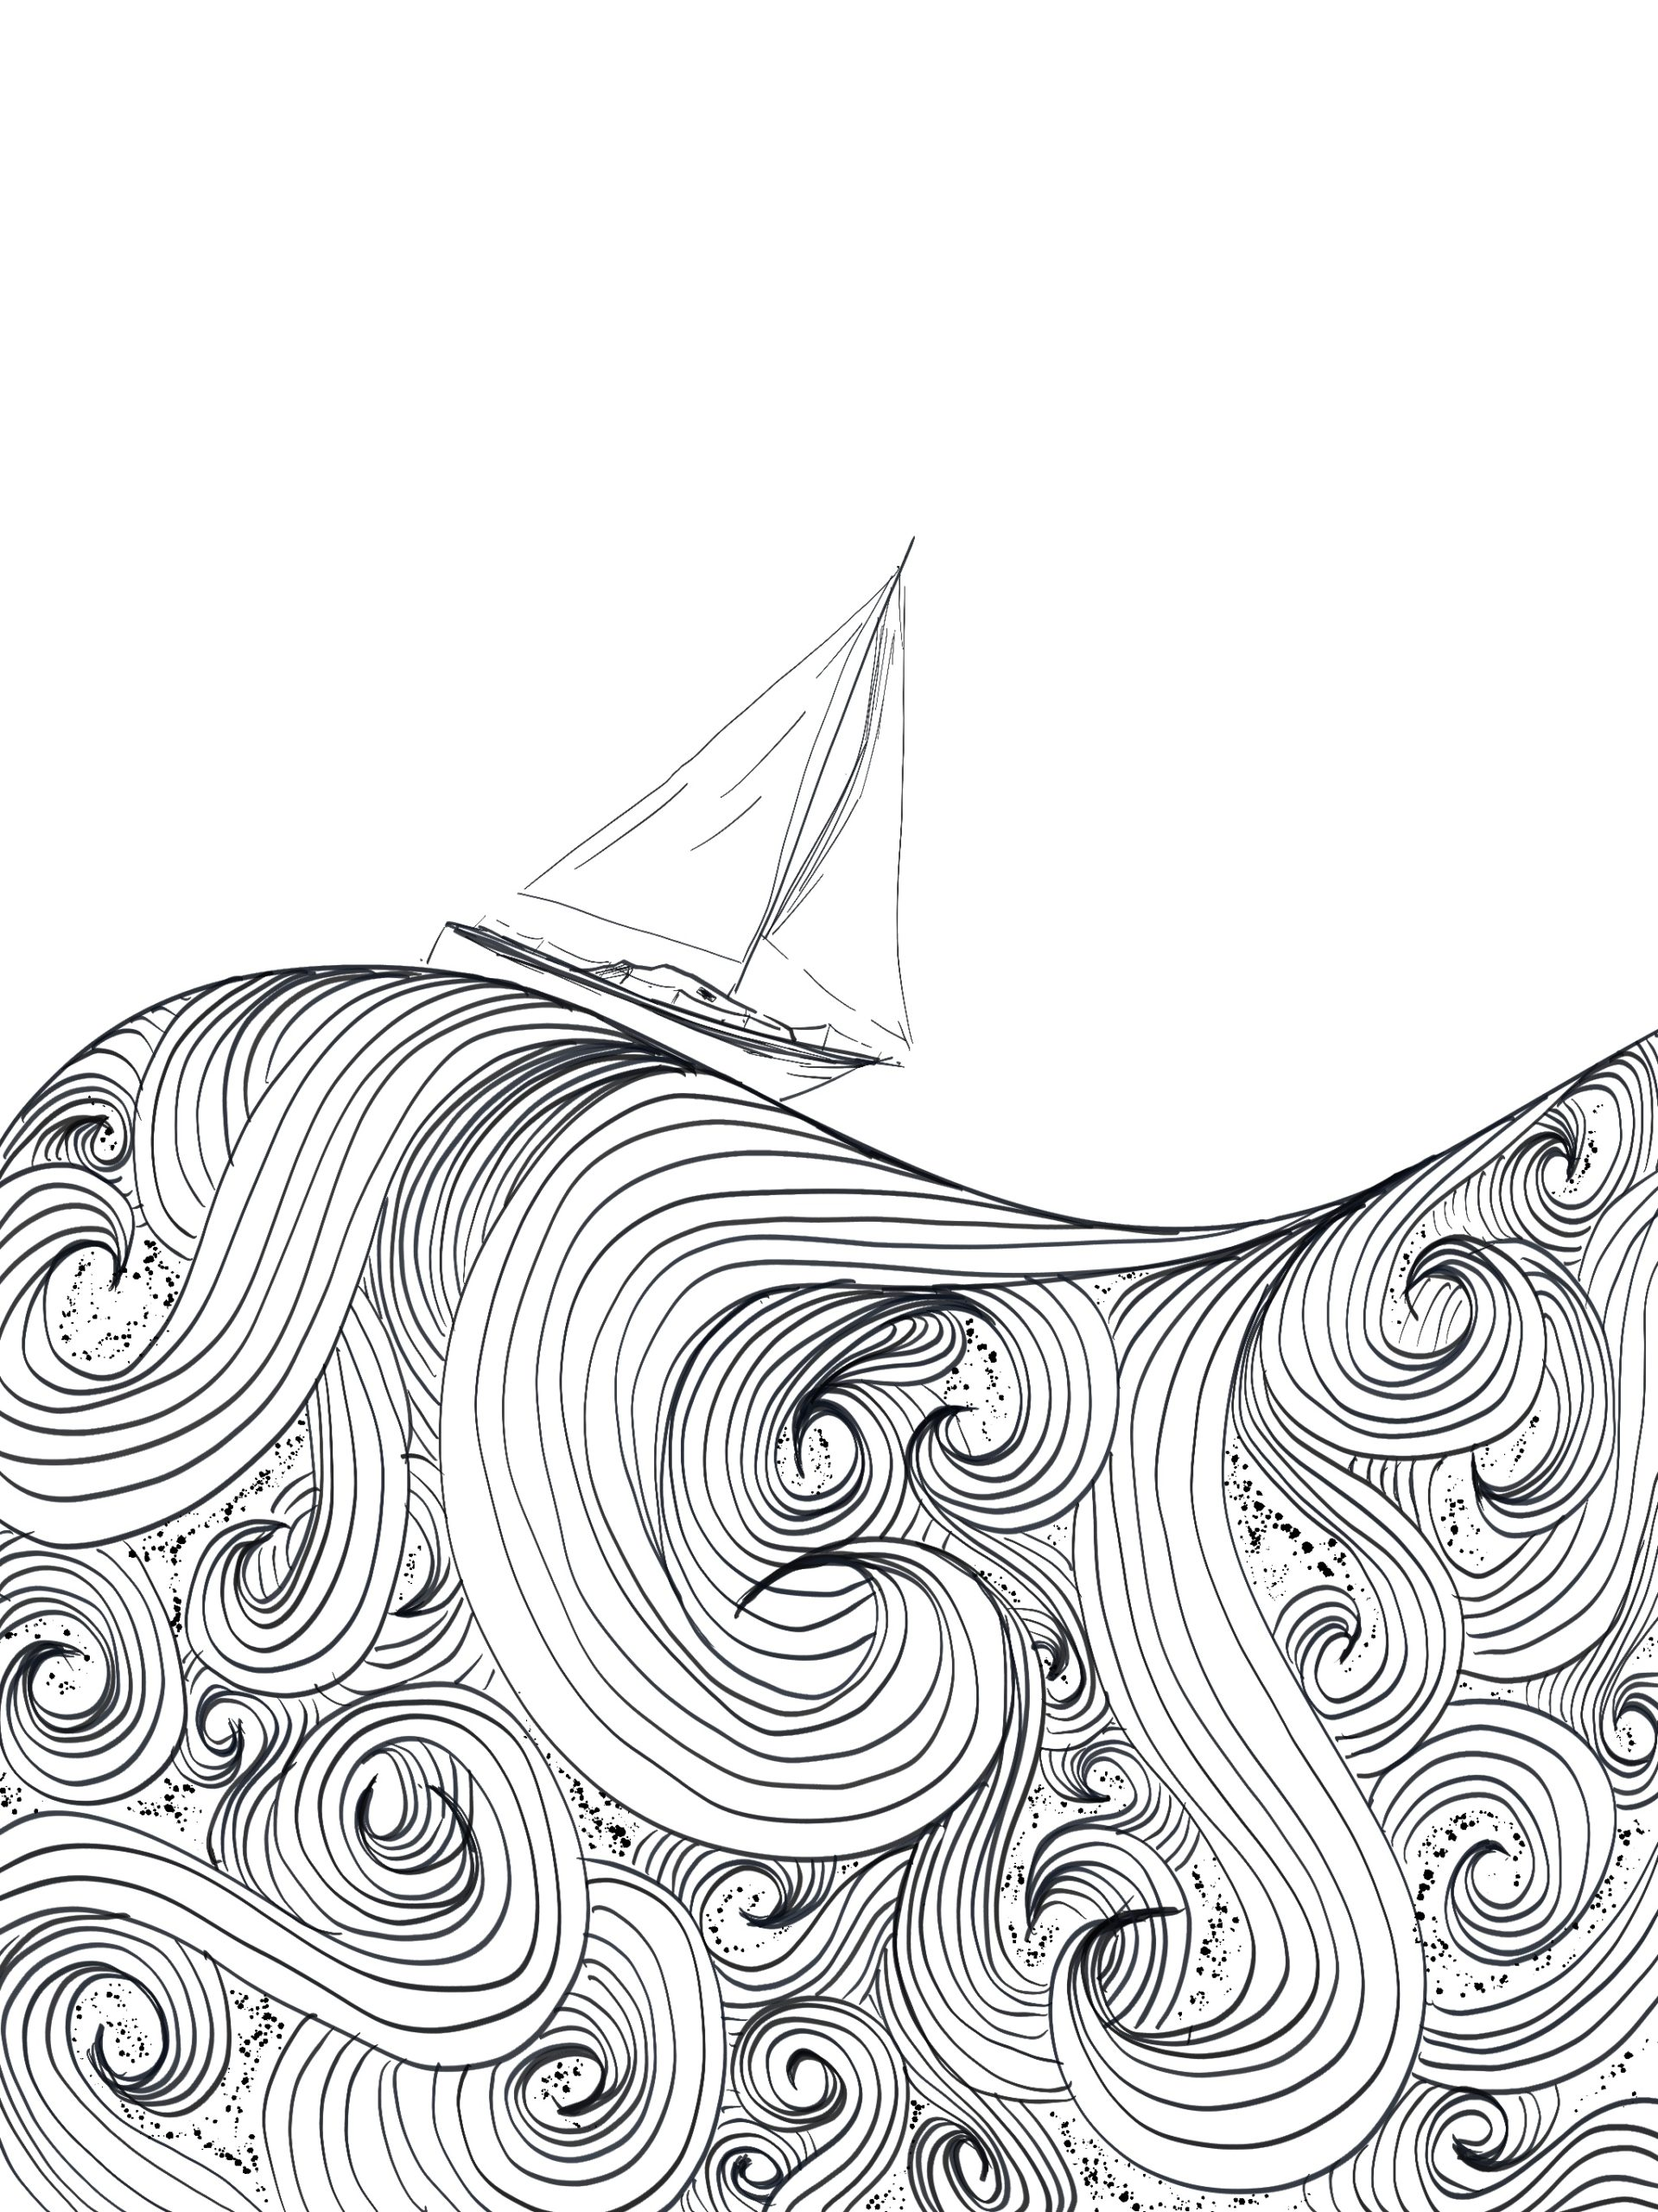 sailboat on swirling waves